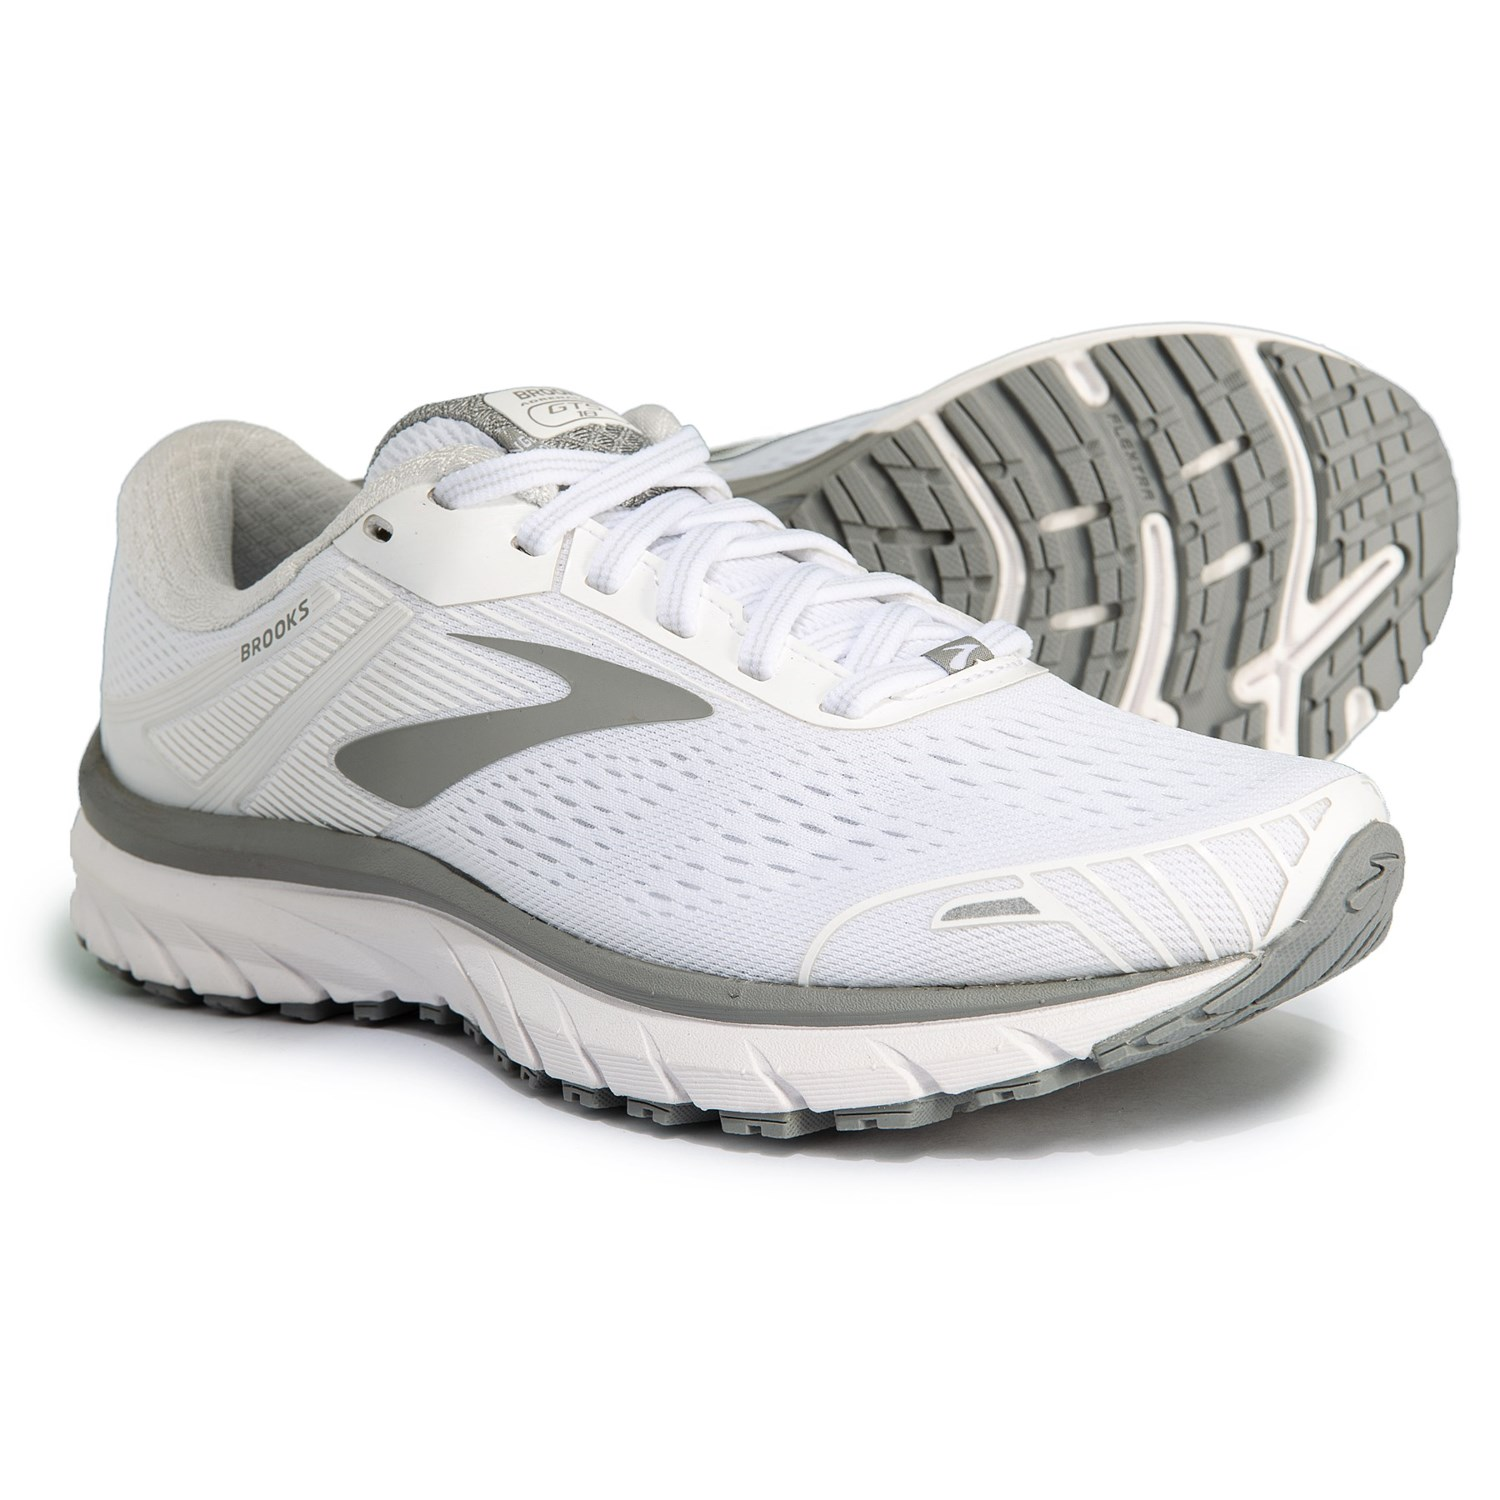 38b93632c2c Brooks Adrenaline GTS 18 Running Shoes (For Women) in White White Grey